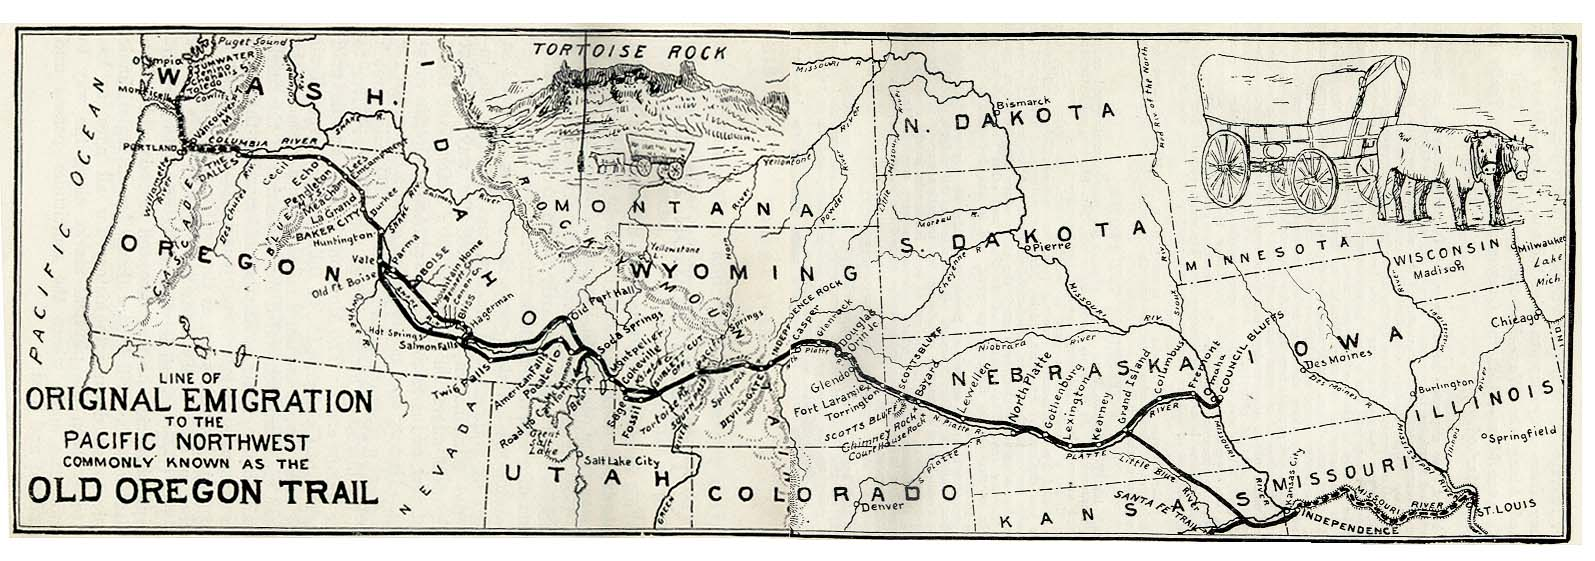 A look at the popular overland emigrant route in the united states the oregon trail